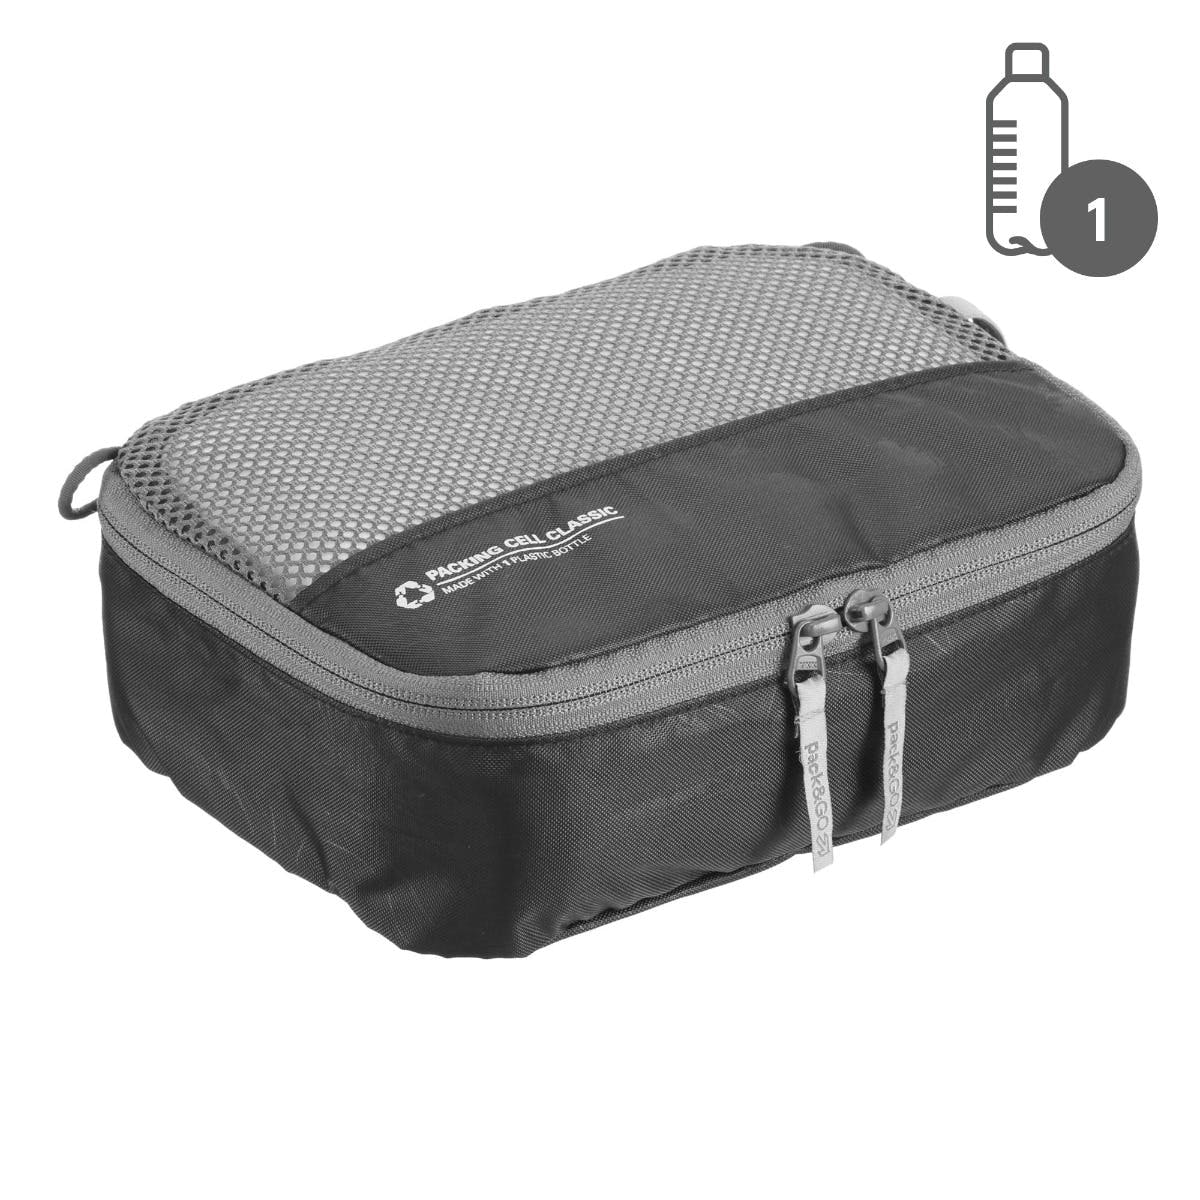 Packing Cells Travel Packing Cells Cubes Cases Travel Organisers For